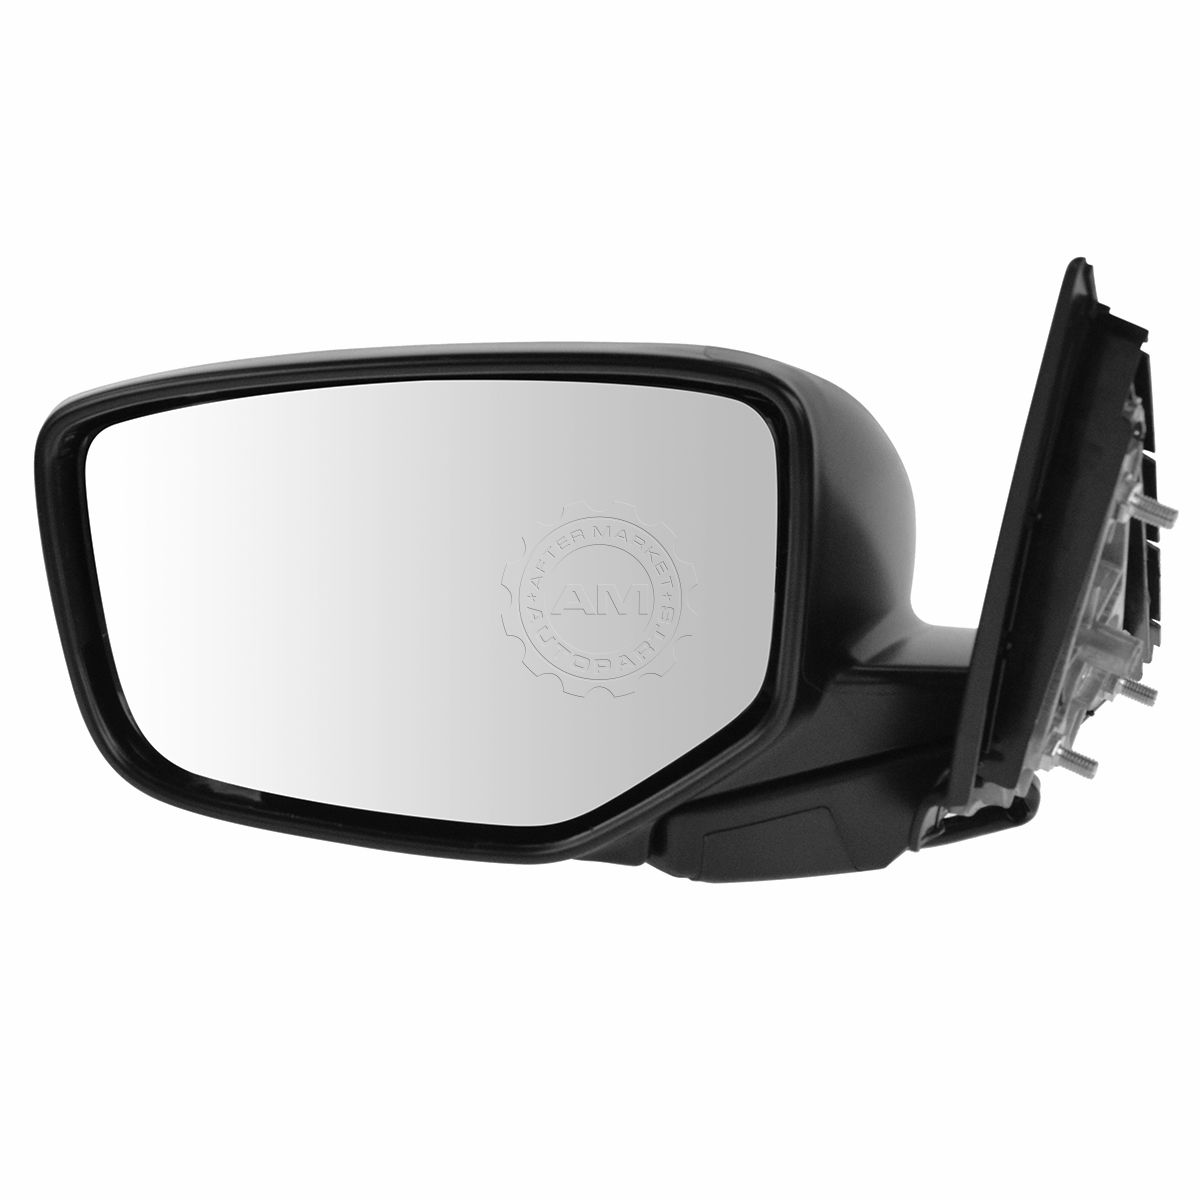 Mirror Power Heated LH Left Driver Side For Acura ILX